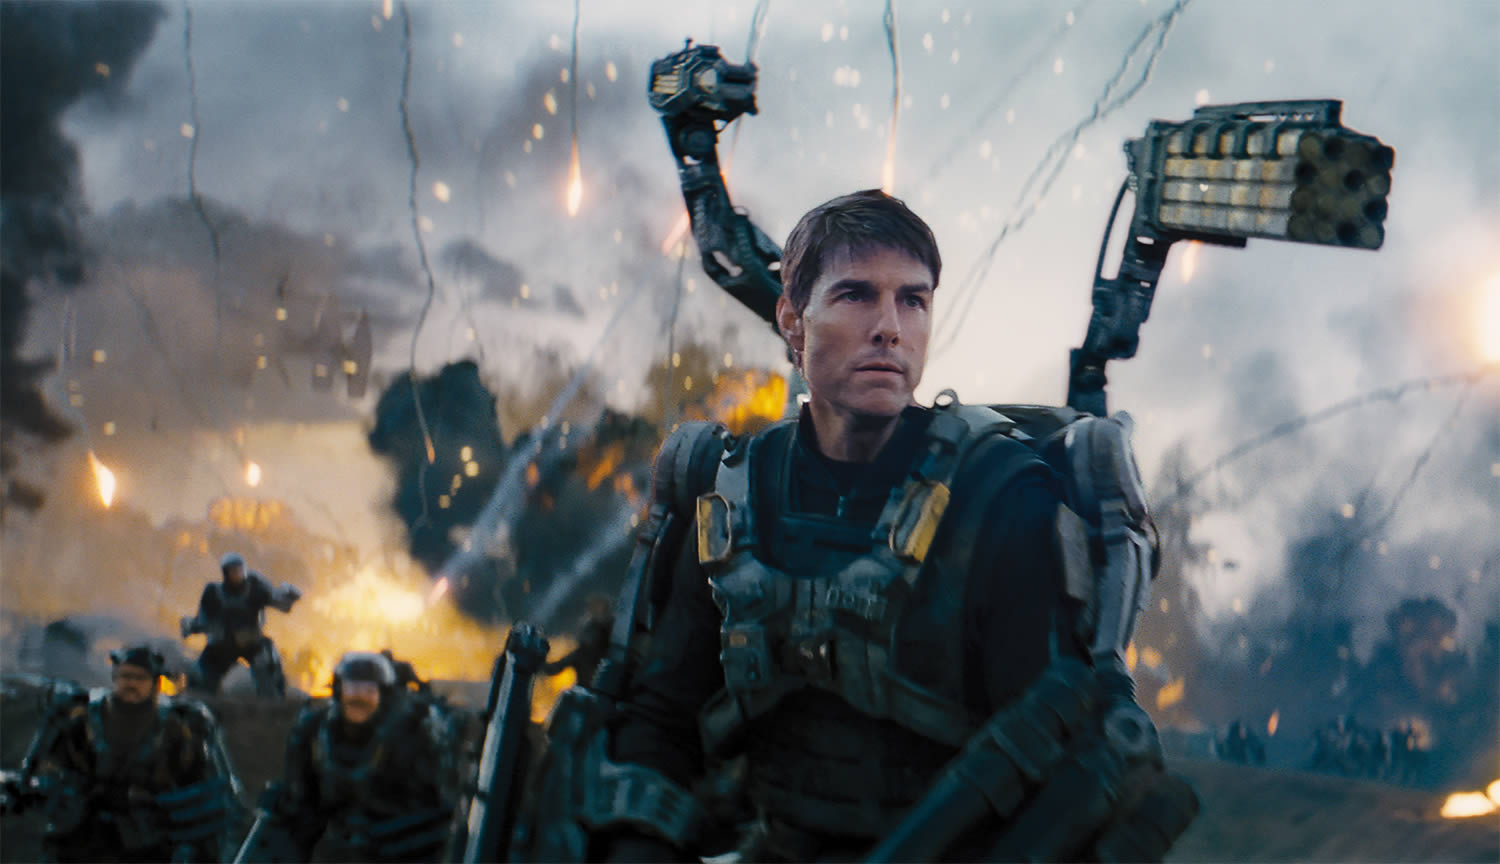 edge of tomorrow movie, tom cruise